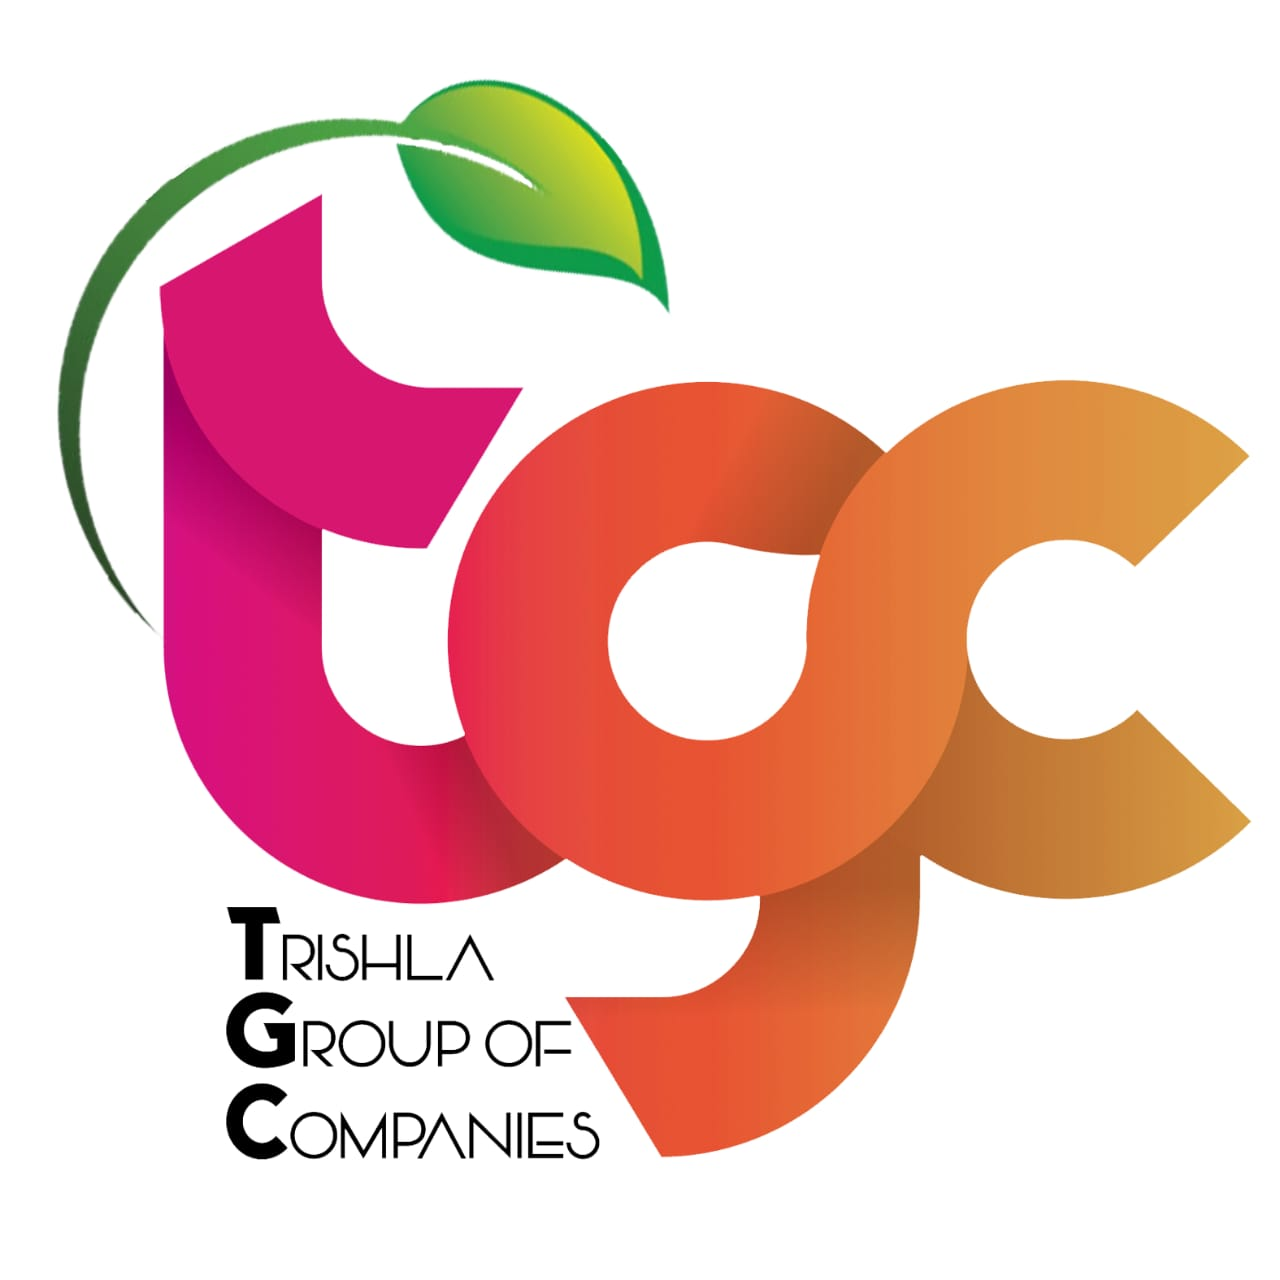 Trishla Group of Companies